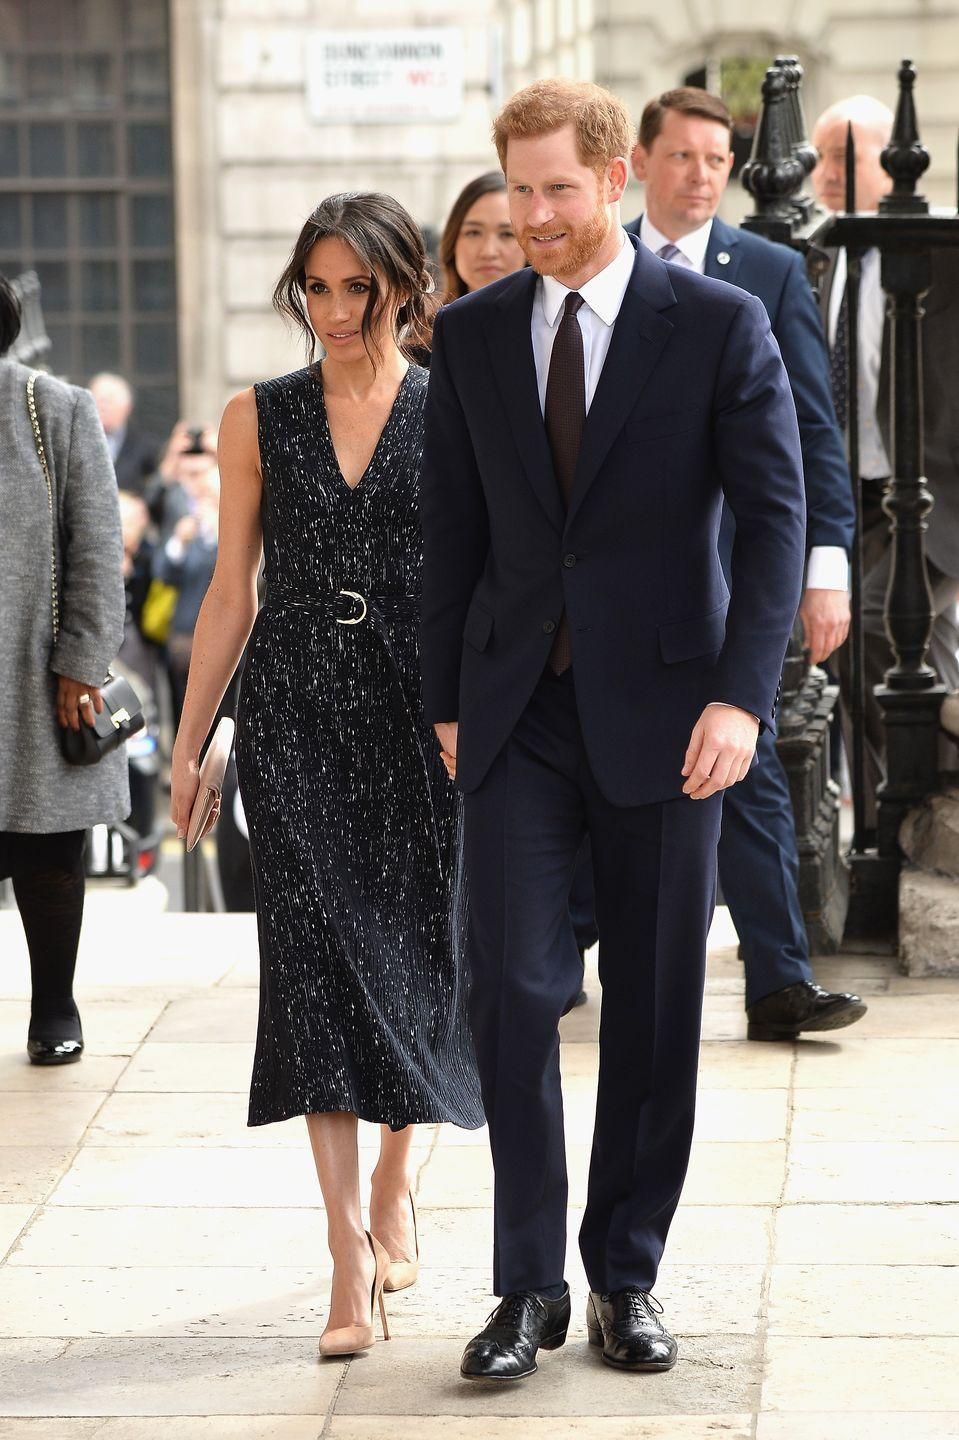 <p>And now check out Meg's Hugo Boss dress, which she wore to a memorial service in London in 2018. Similar, no?</p>